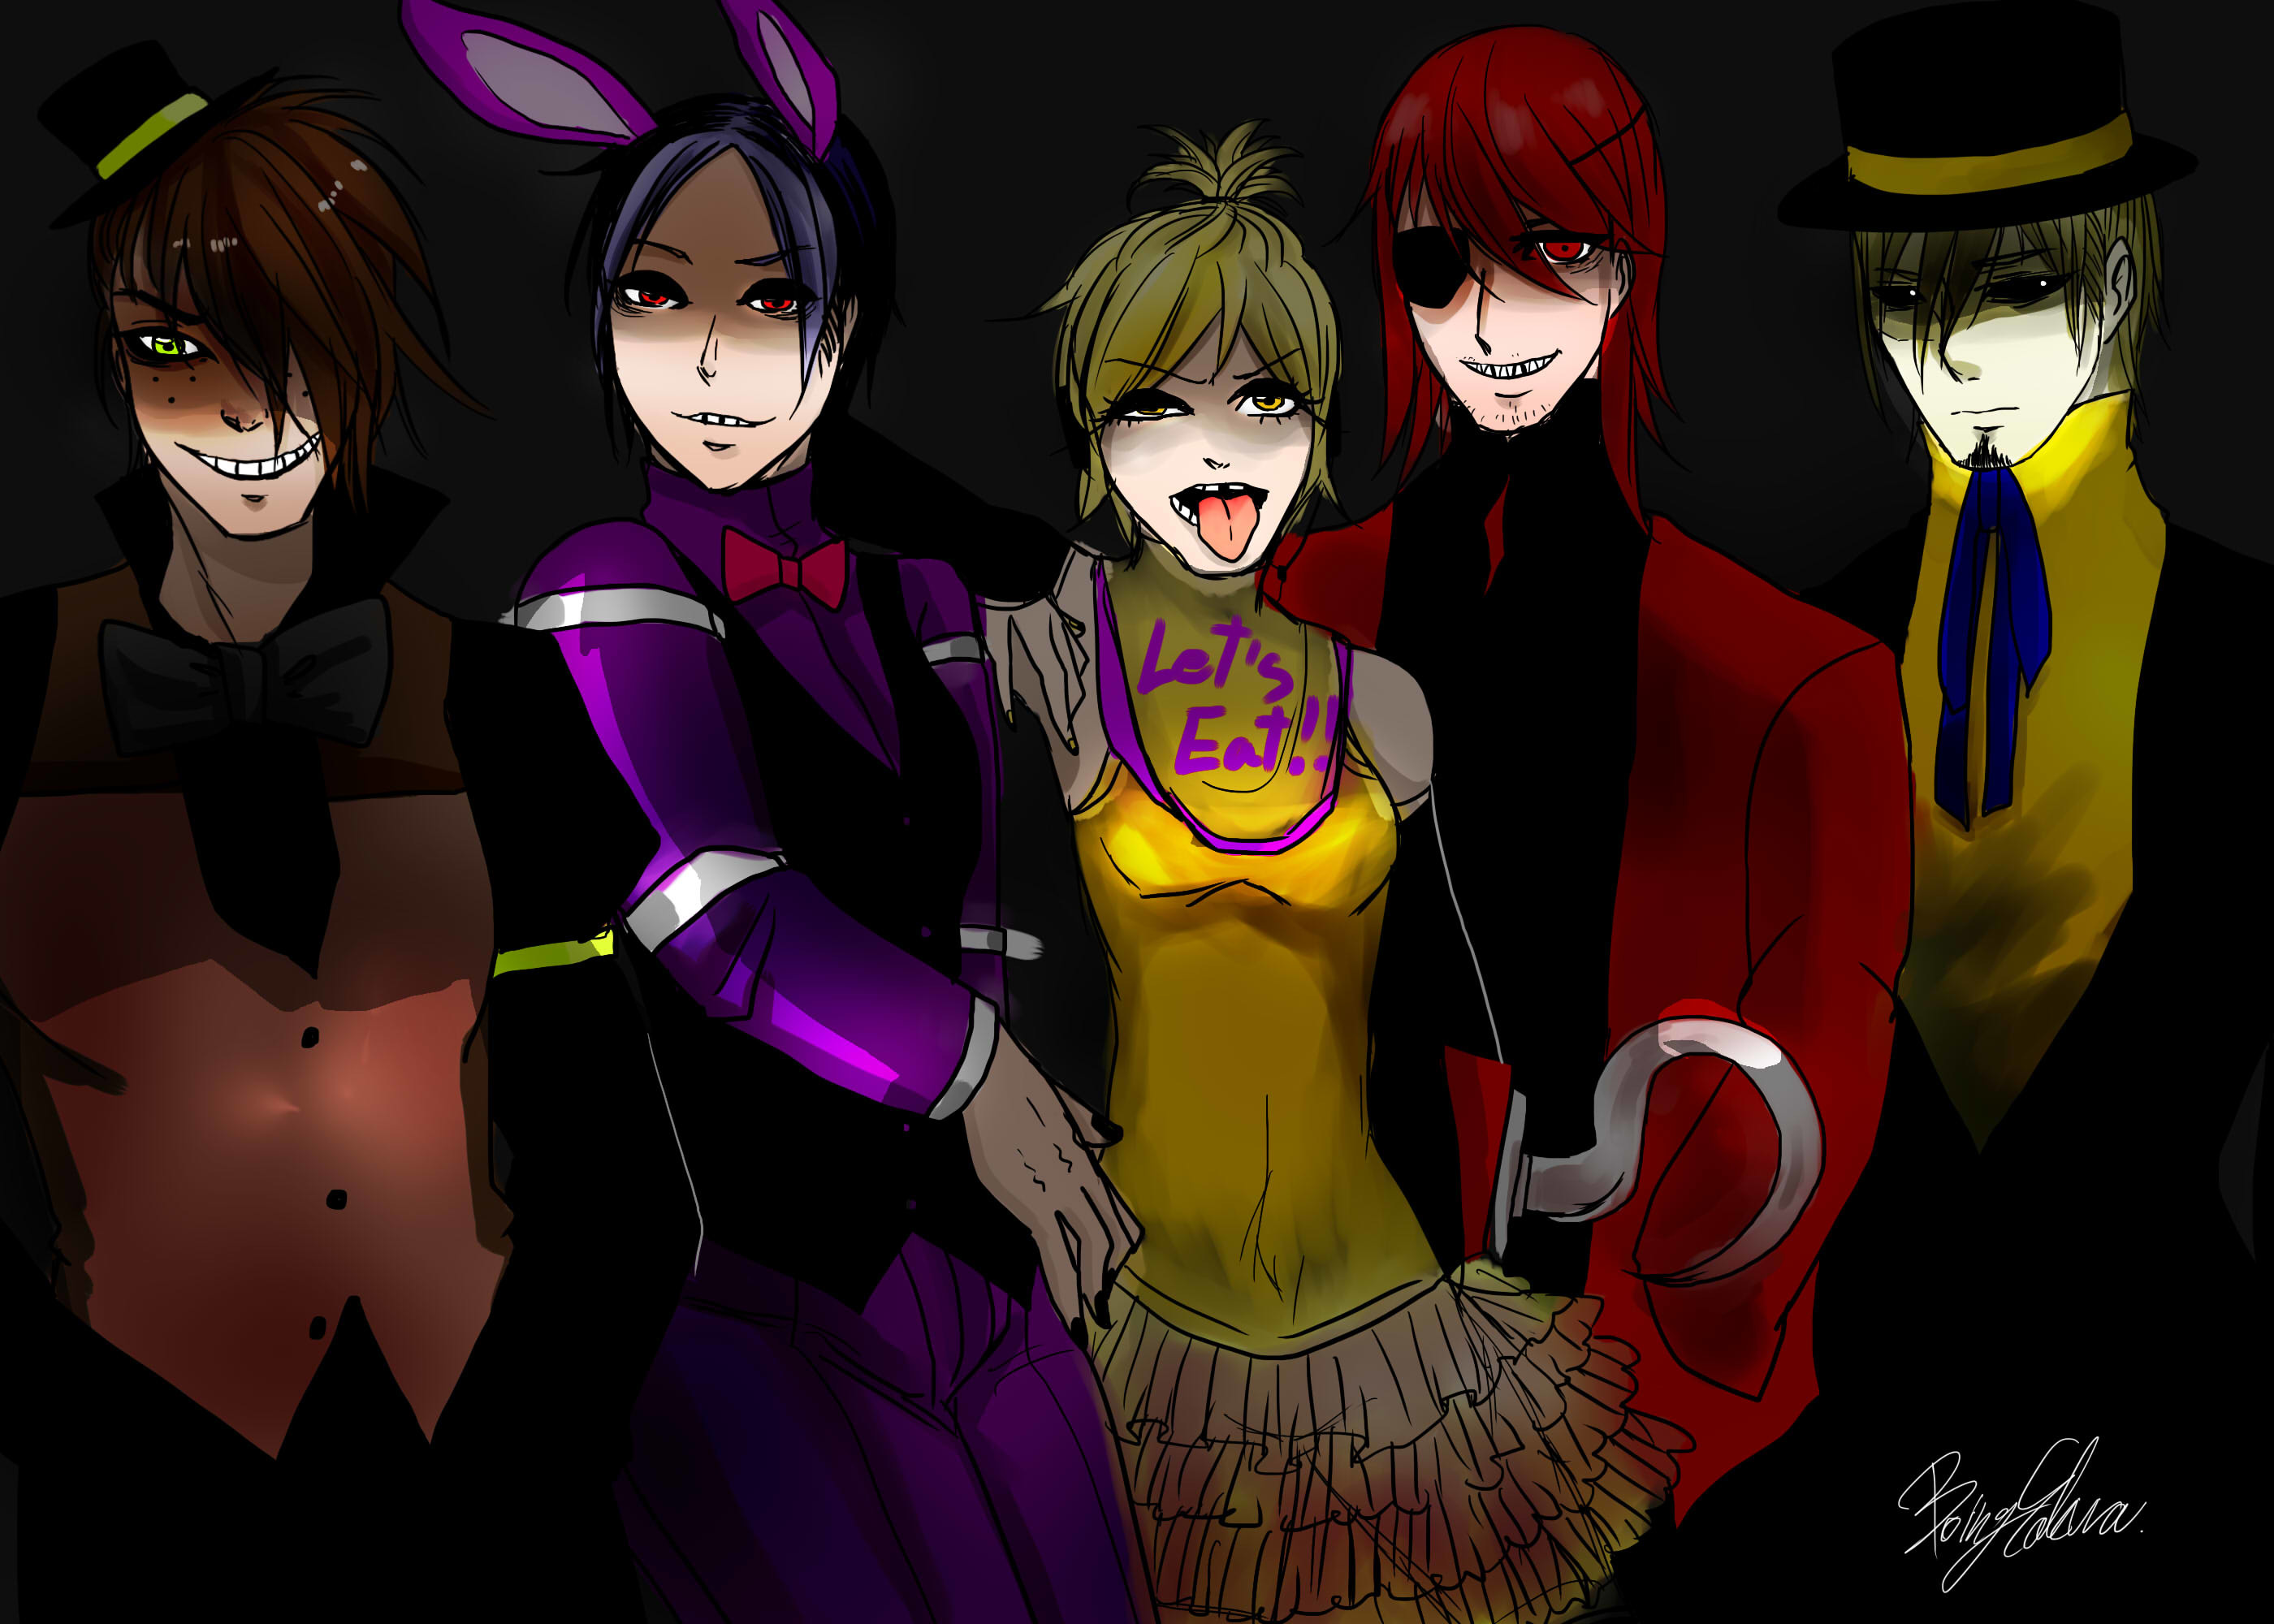 2800x2000 Five Nights at Freddy's by BoingSakura Five Nights at Freddy's by  BoingSakura